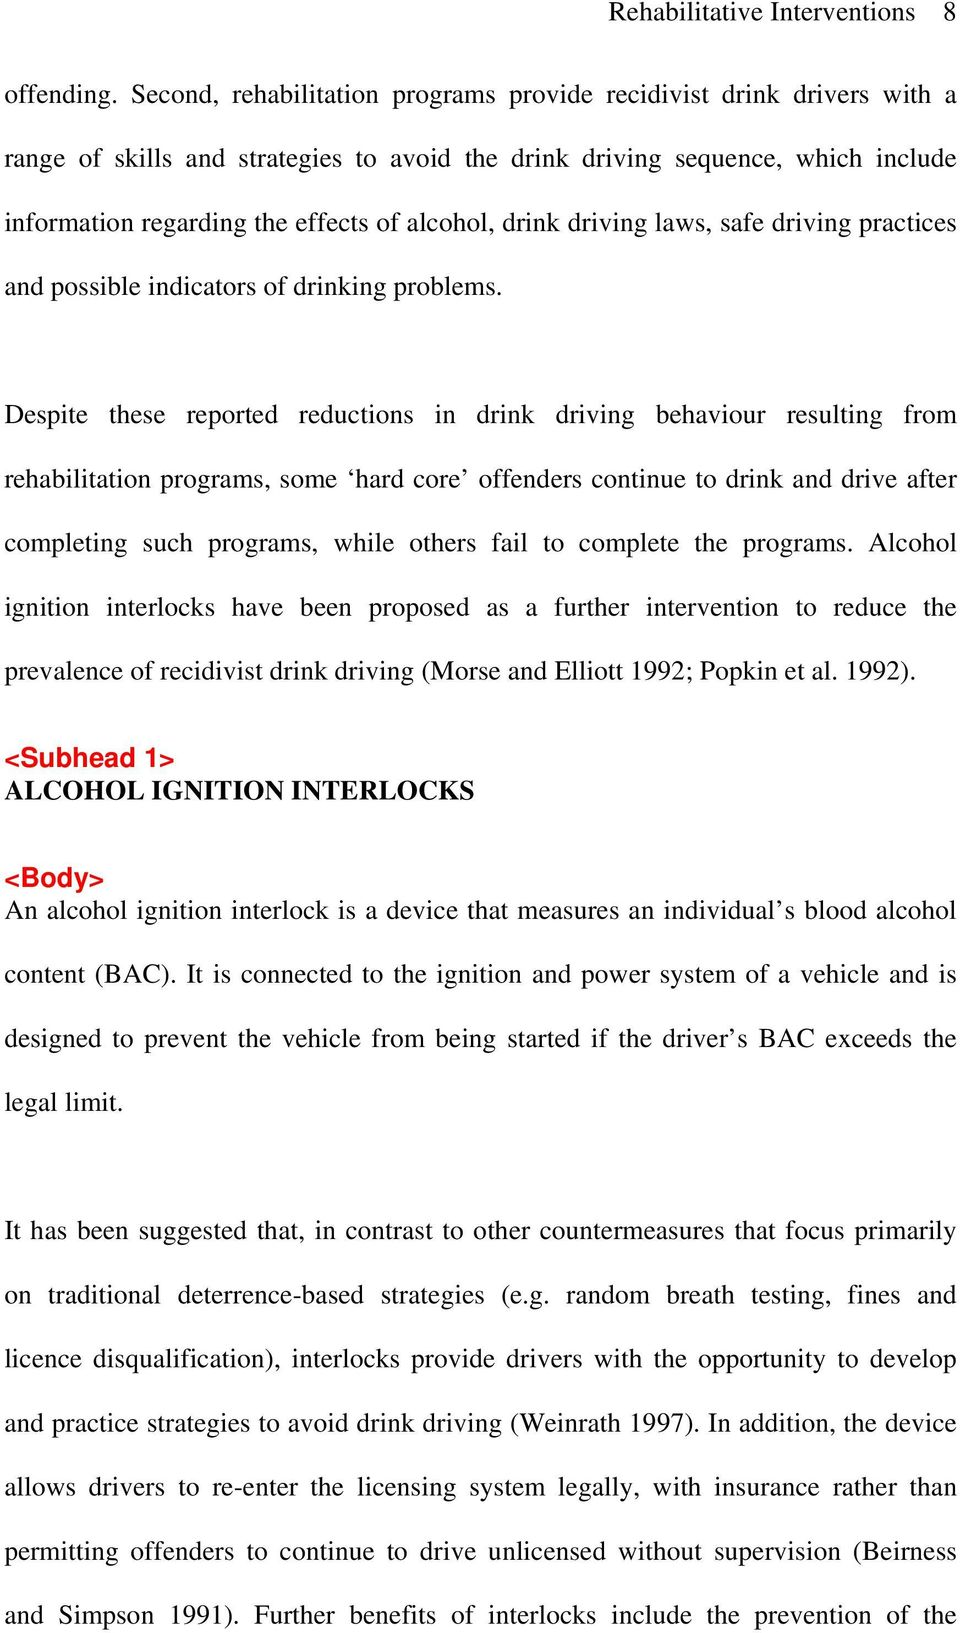 drink driving laws, safe driving practices and possible indicators of drinking problems.